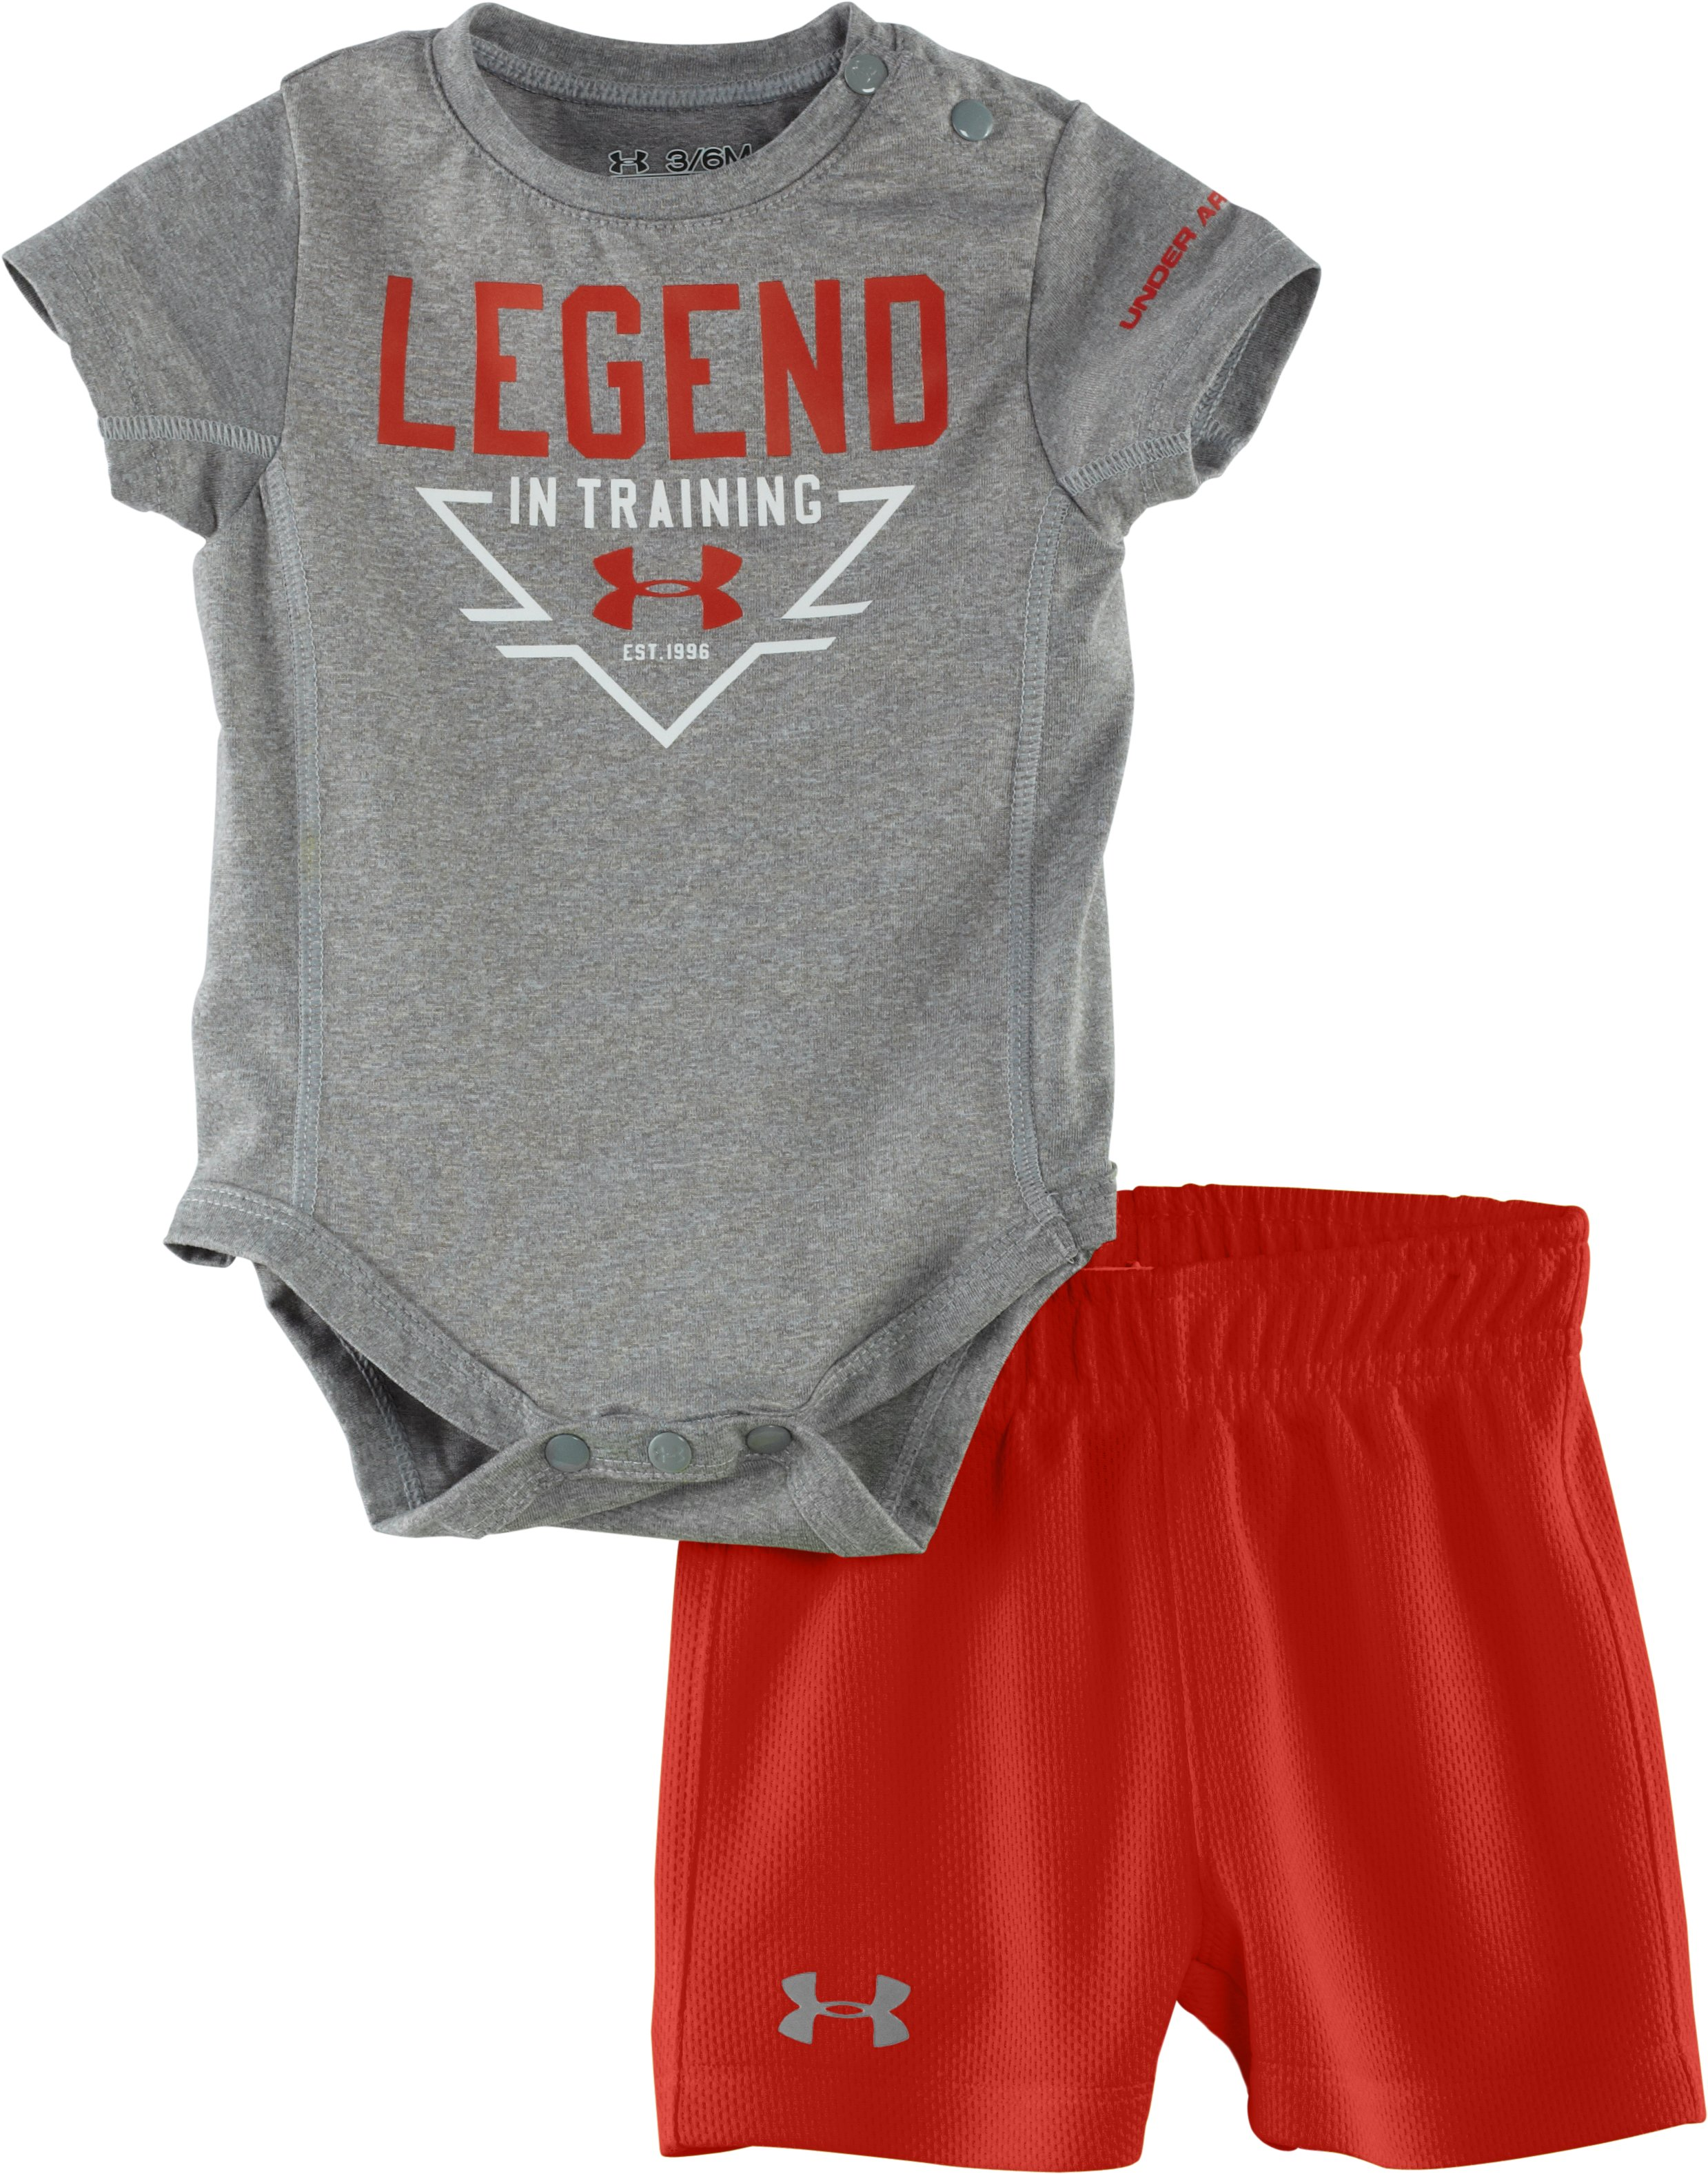 Boys' Newborn UA Legend In Training 2-Piece Set, True Gray Heather